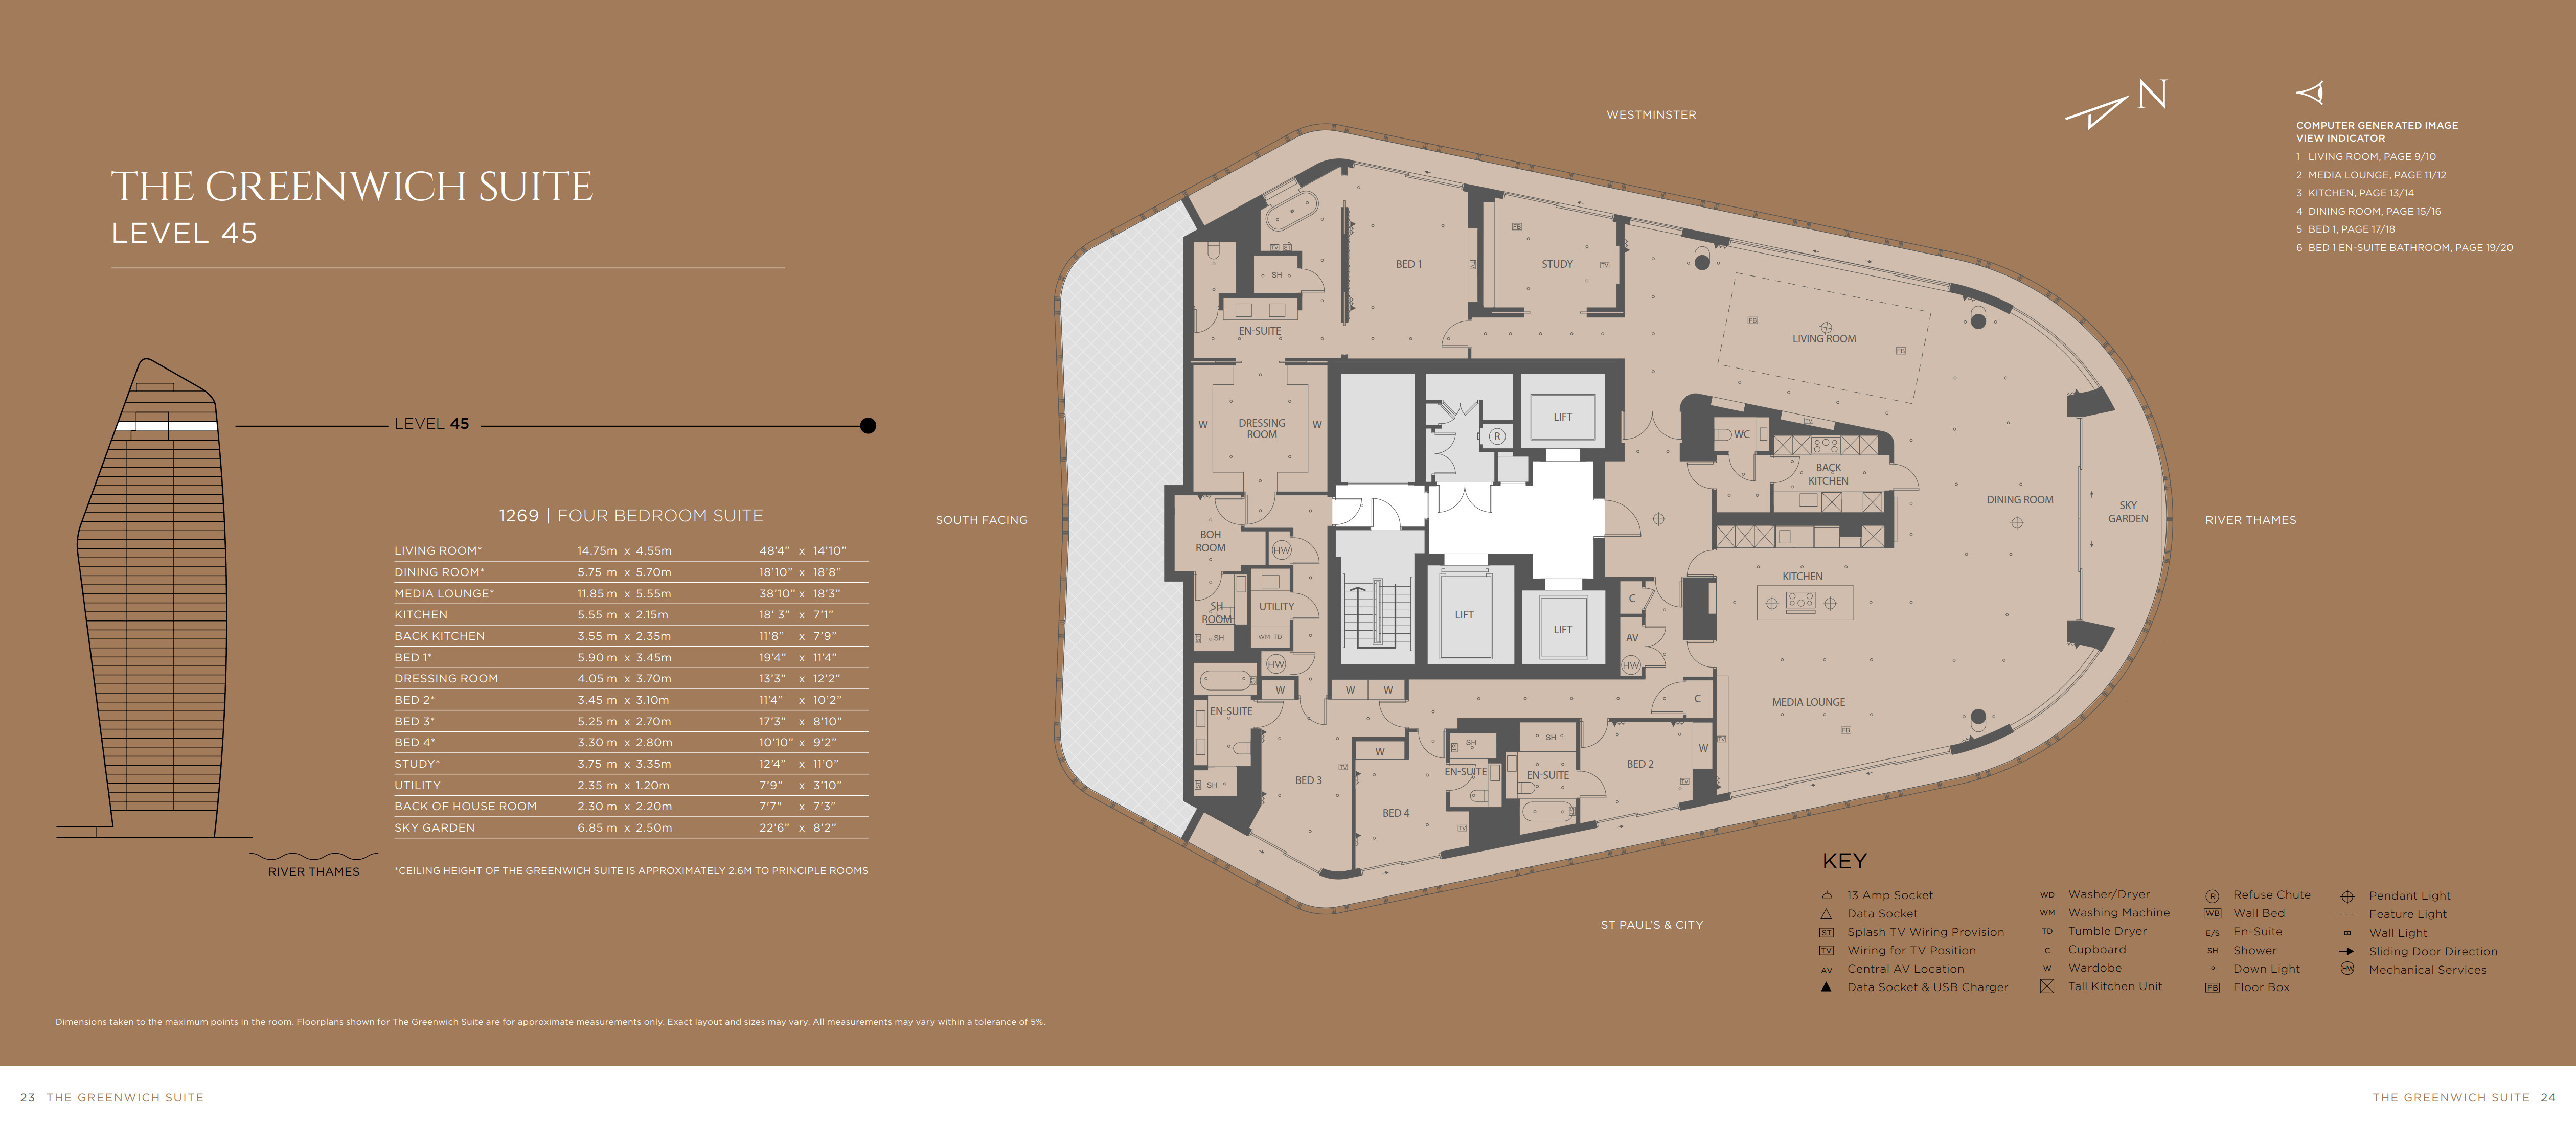 Florida Miami Beach Louvre House Unit 03 moreover RAK Blu Mirage Typical additionally Lofts West Tower 003 besides Photo gallery furthermore India Mumbai World One Tower Wo West Wing 3 Bed World Residence 1. on floor plans